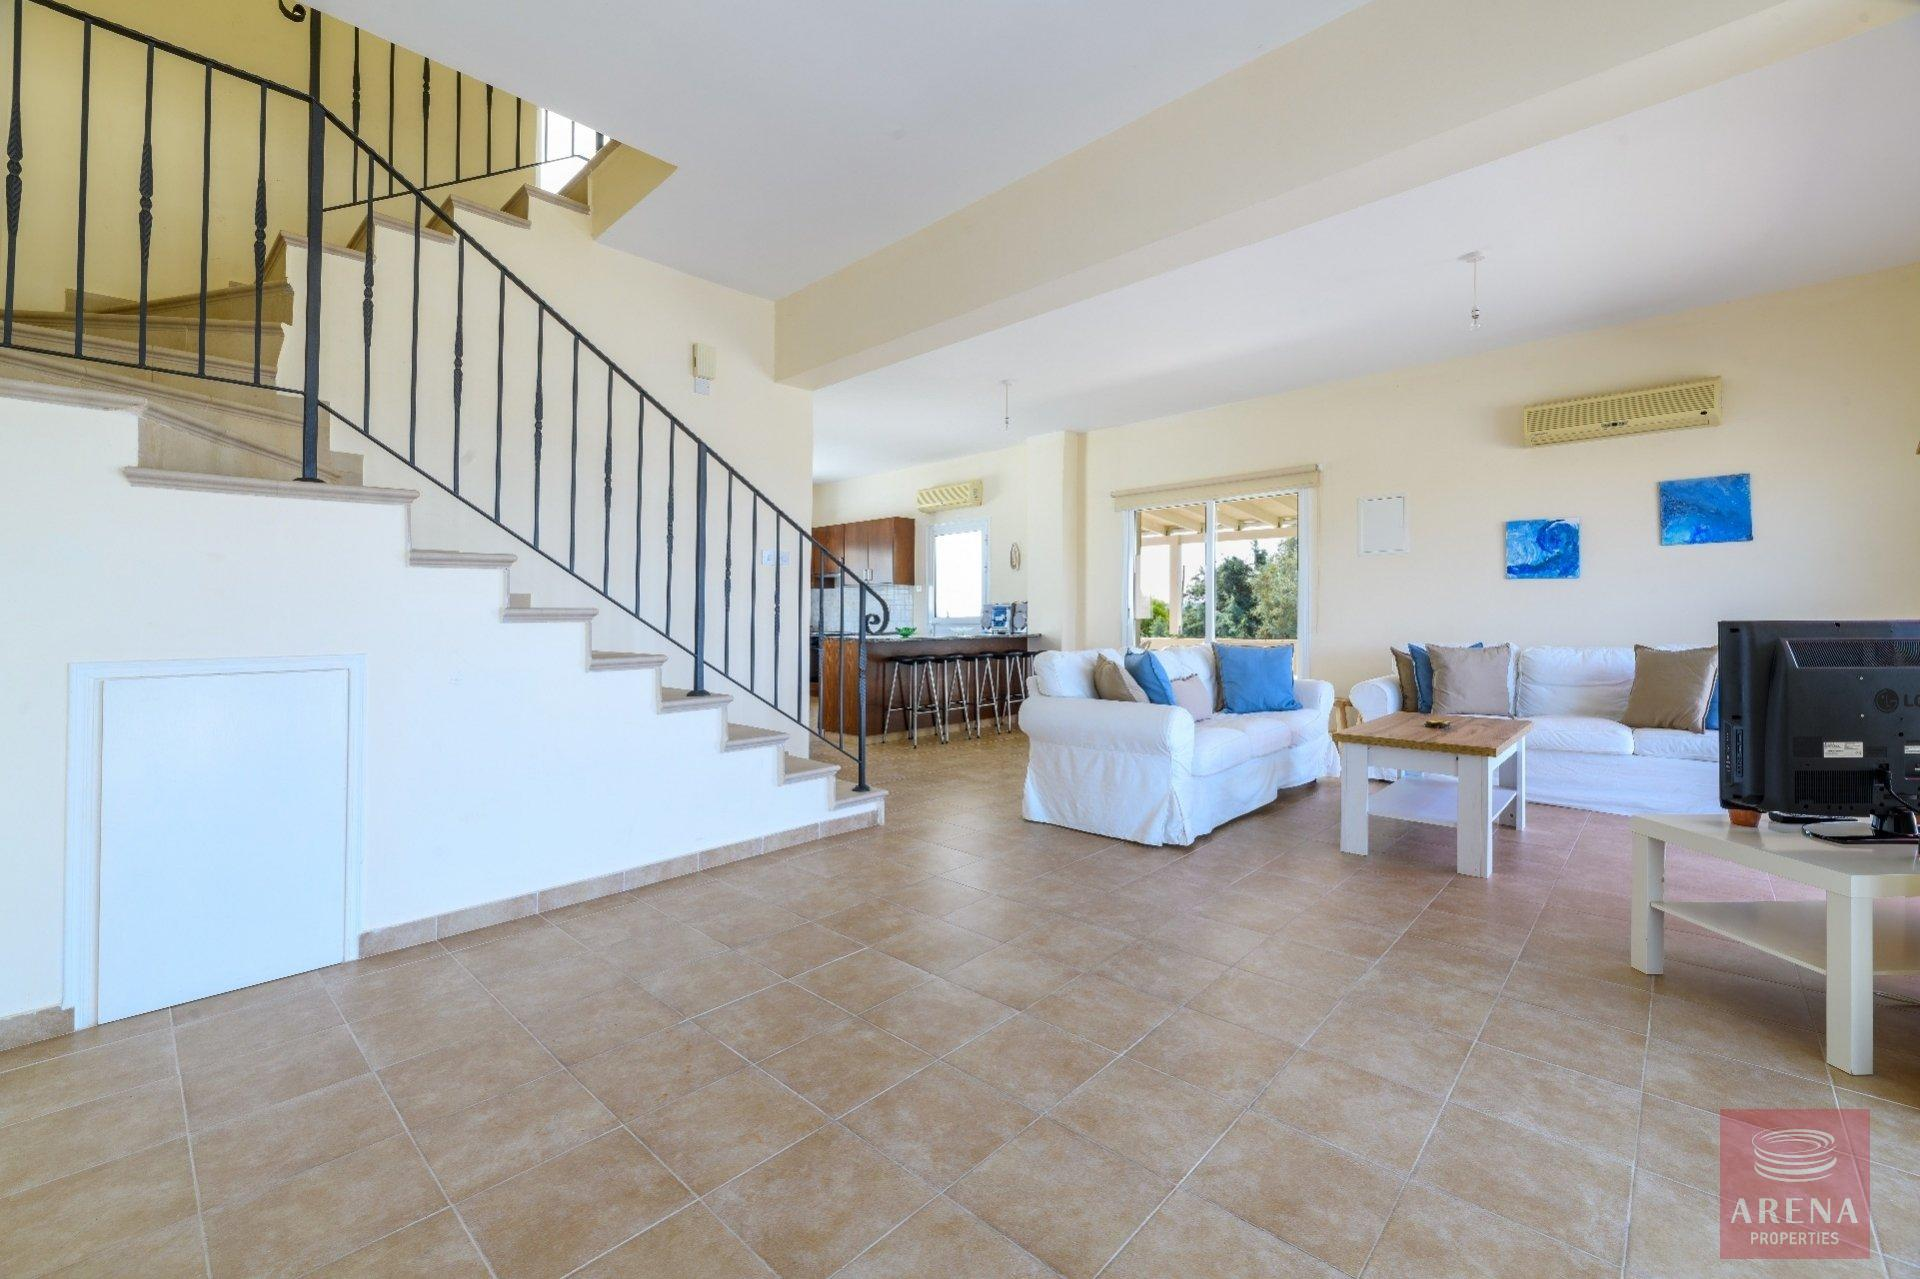 semi-detached house in paralimni - living area